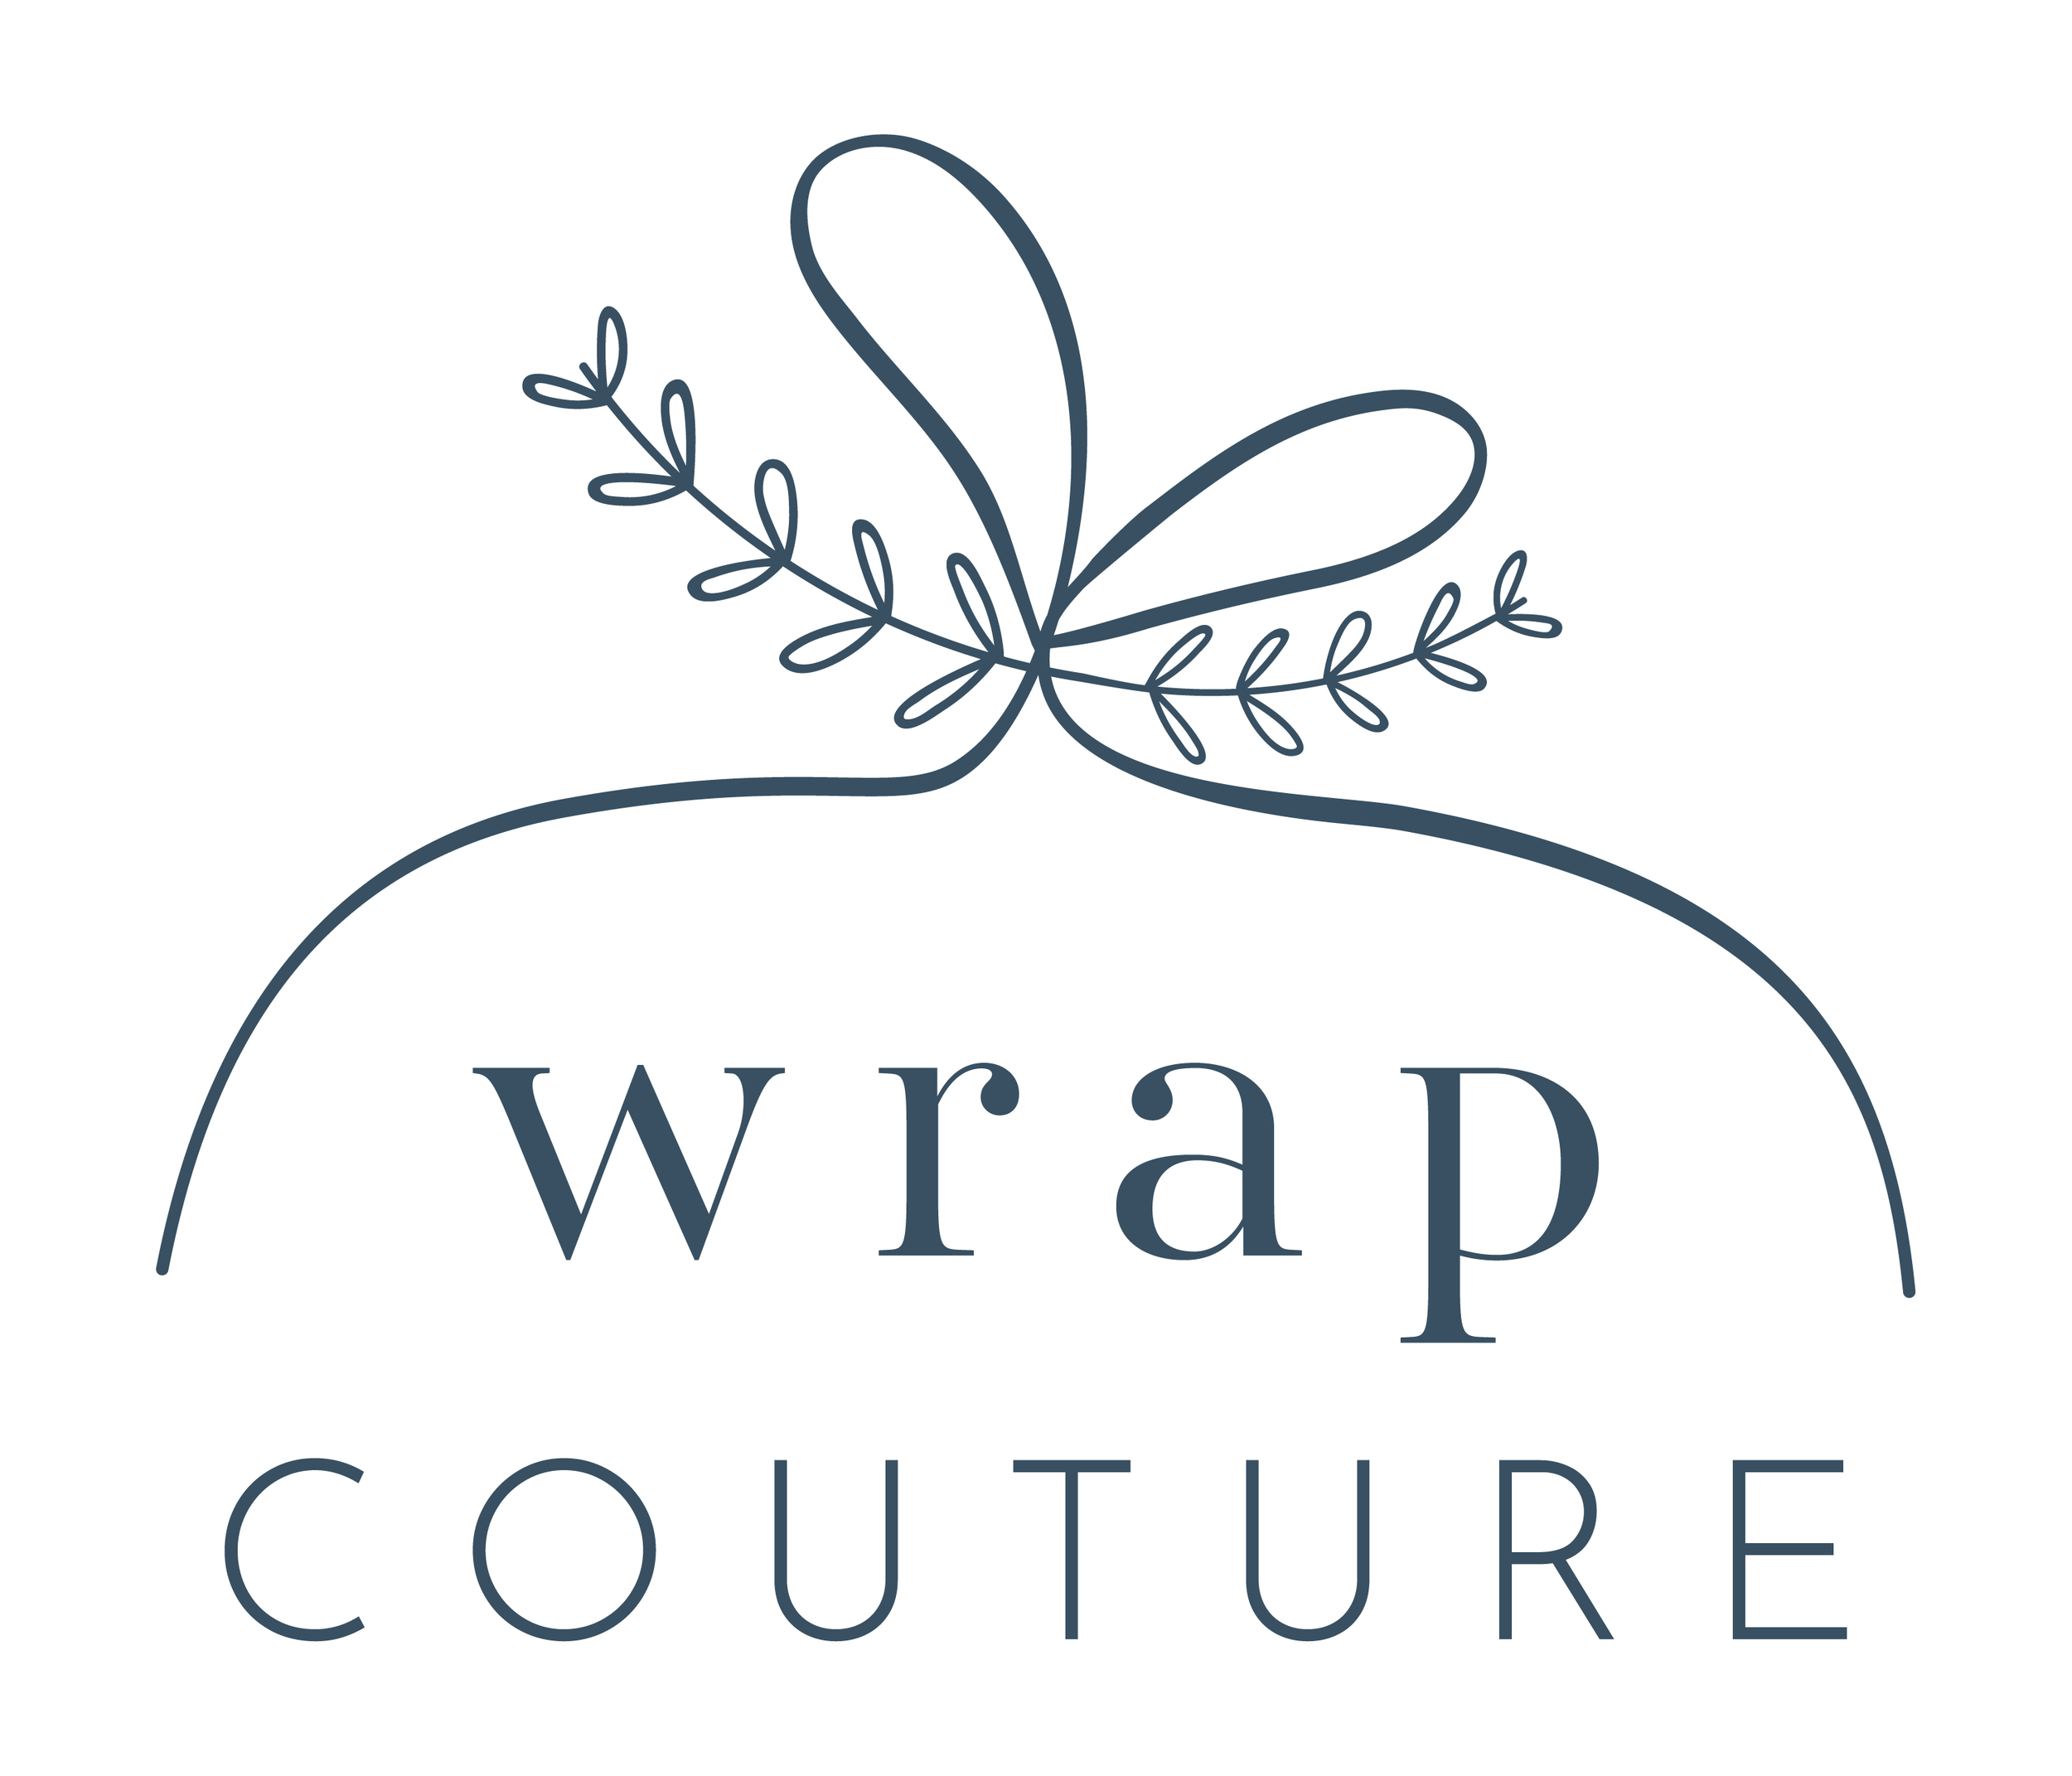 Wrap Couture Logo- Gift Wrapping specialists - graphic designer cornwall.png